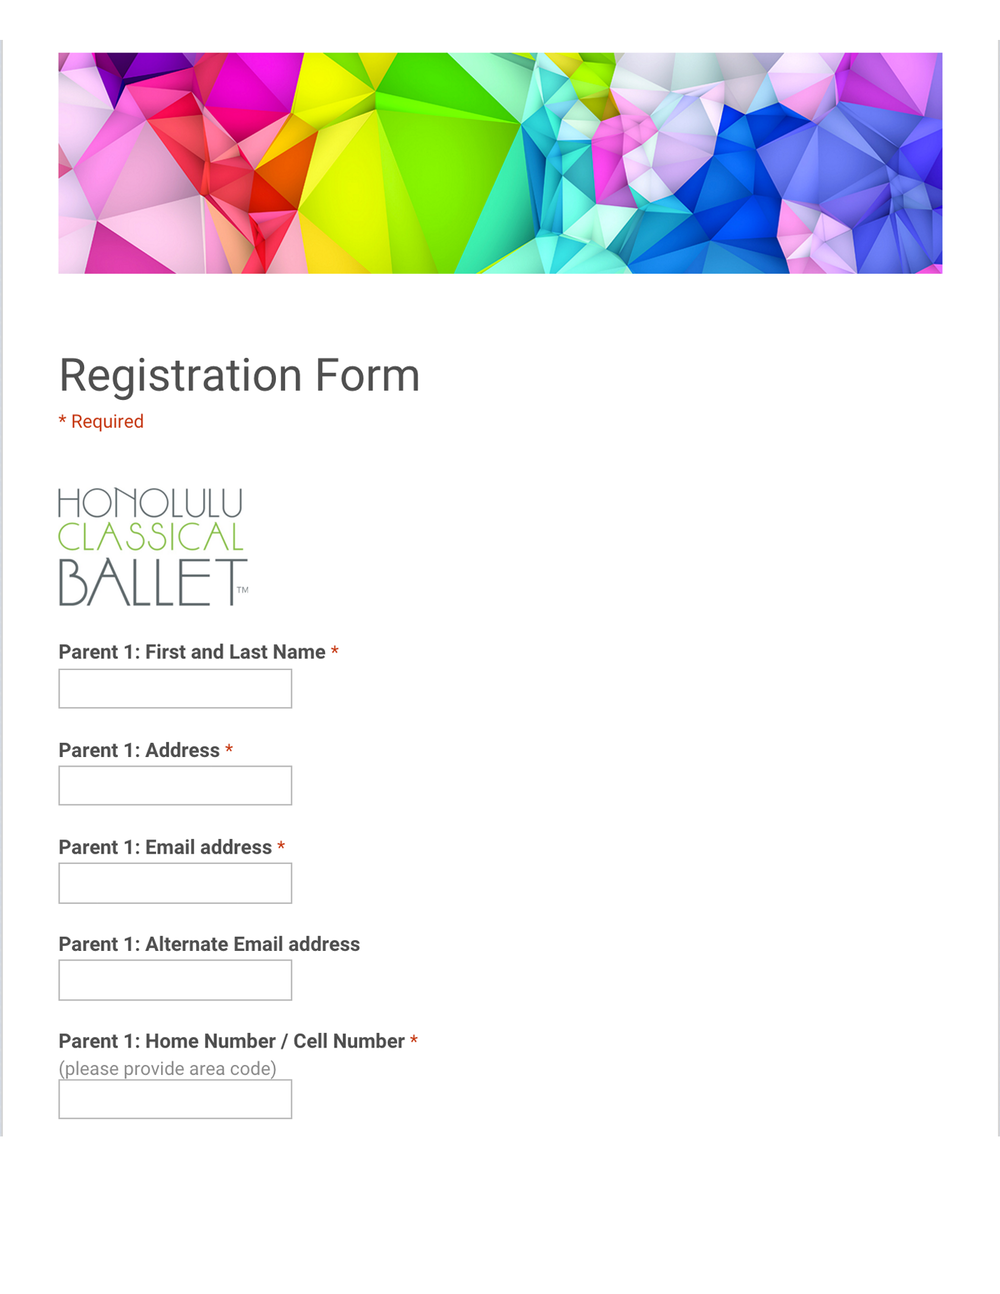 Registration Form via Google forms